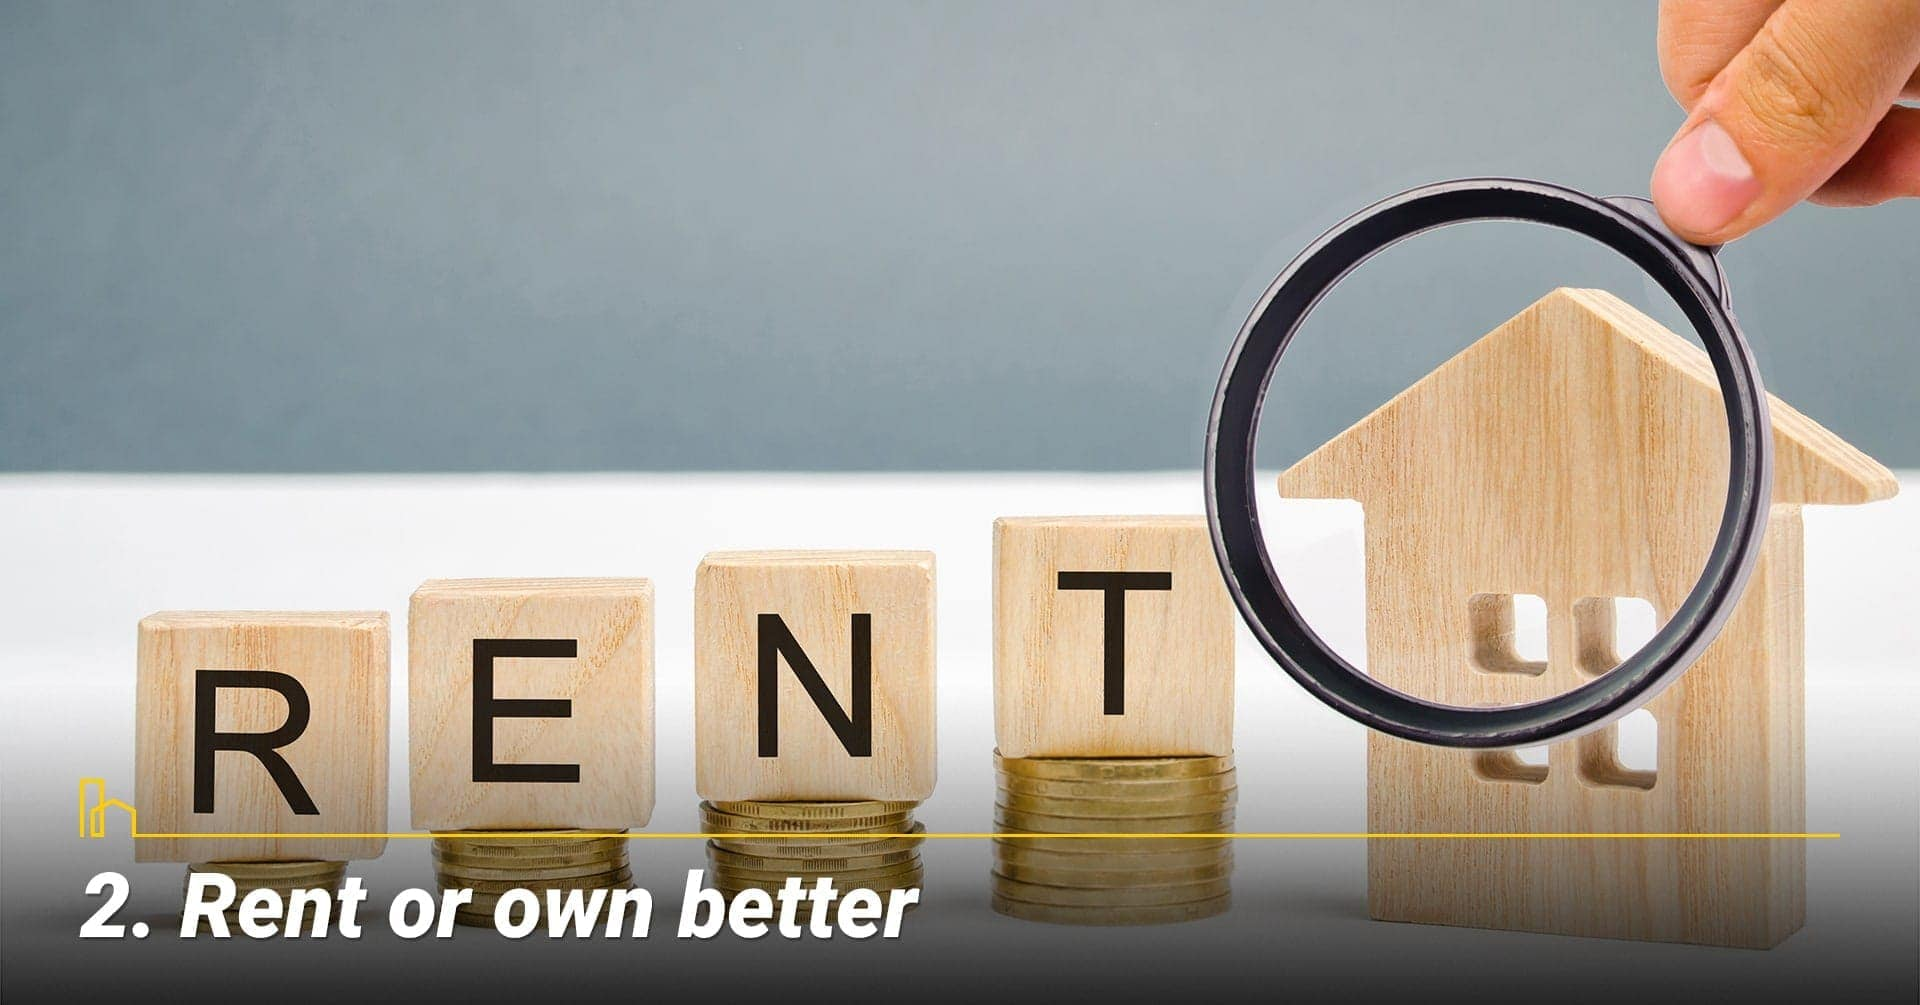 Rent or own better, buy or rent